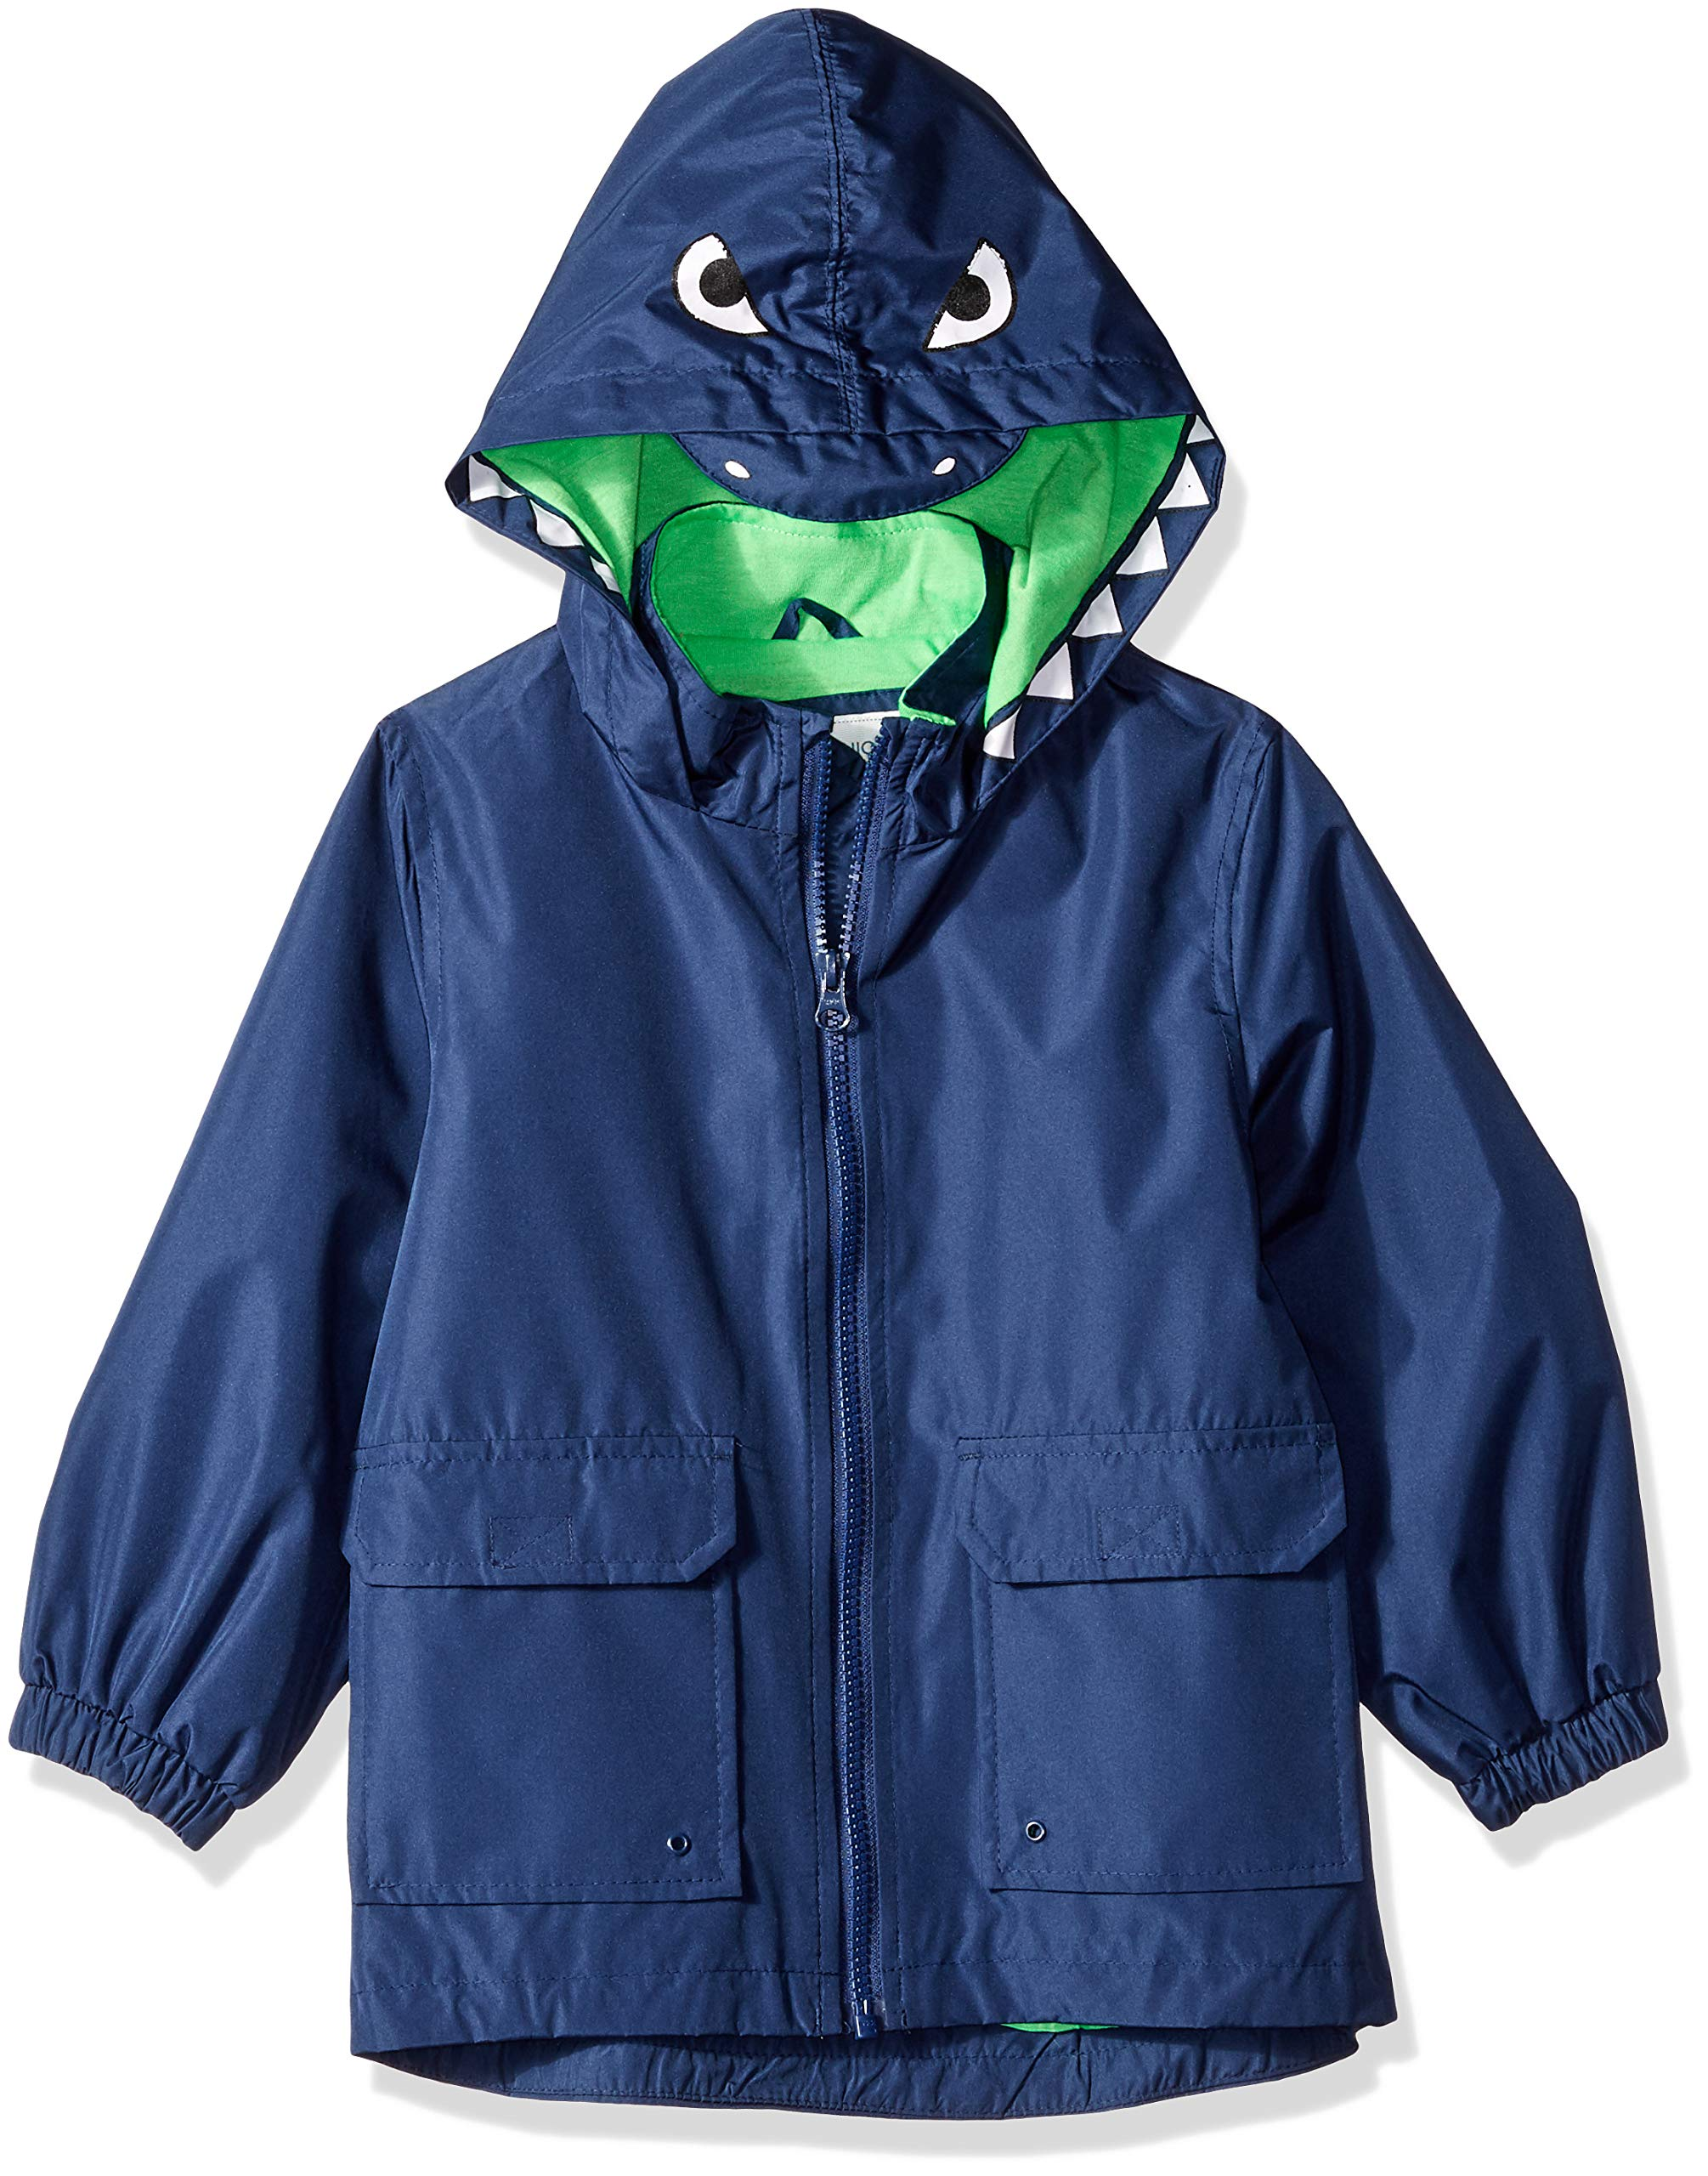 Carter's Little Boys' Critter Rainslicker Lightweight Rain Jacket, Navy Dinosaur, 5/6